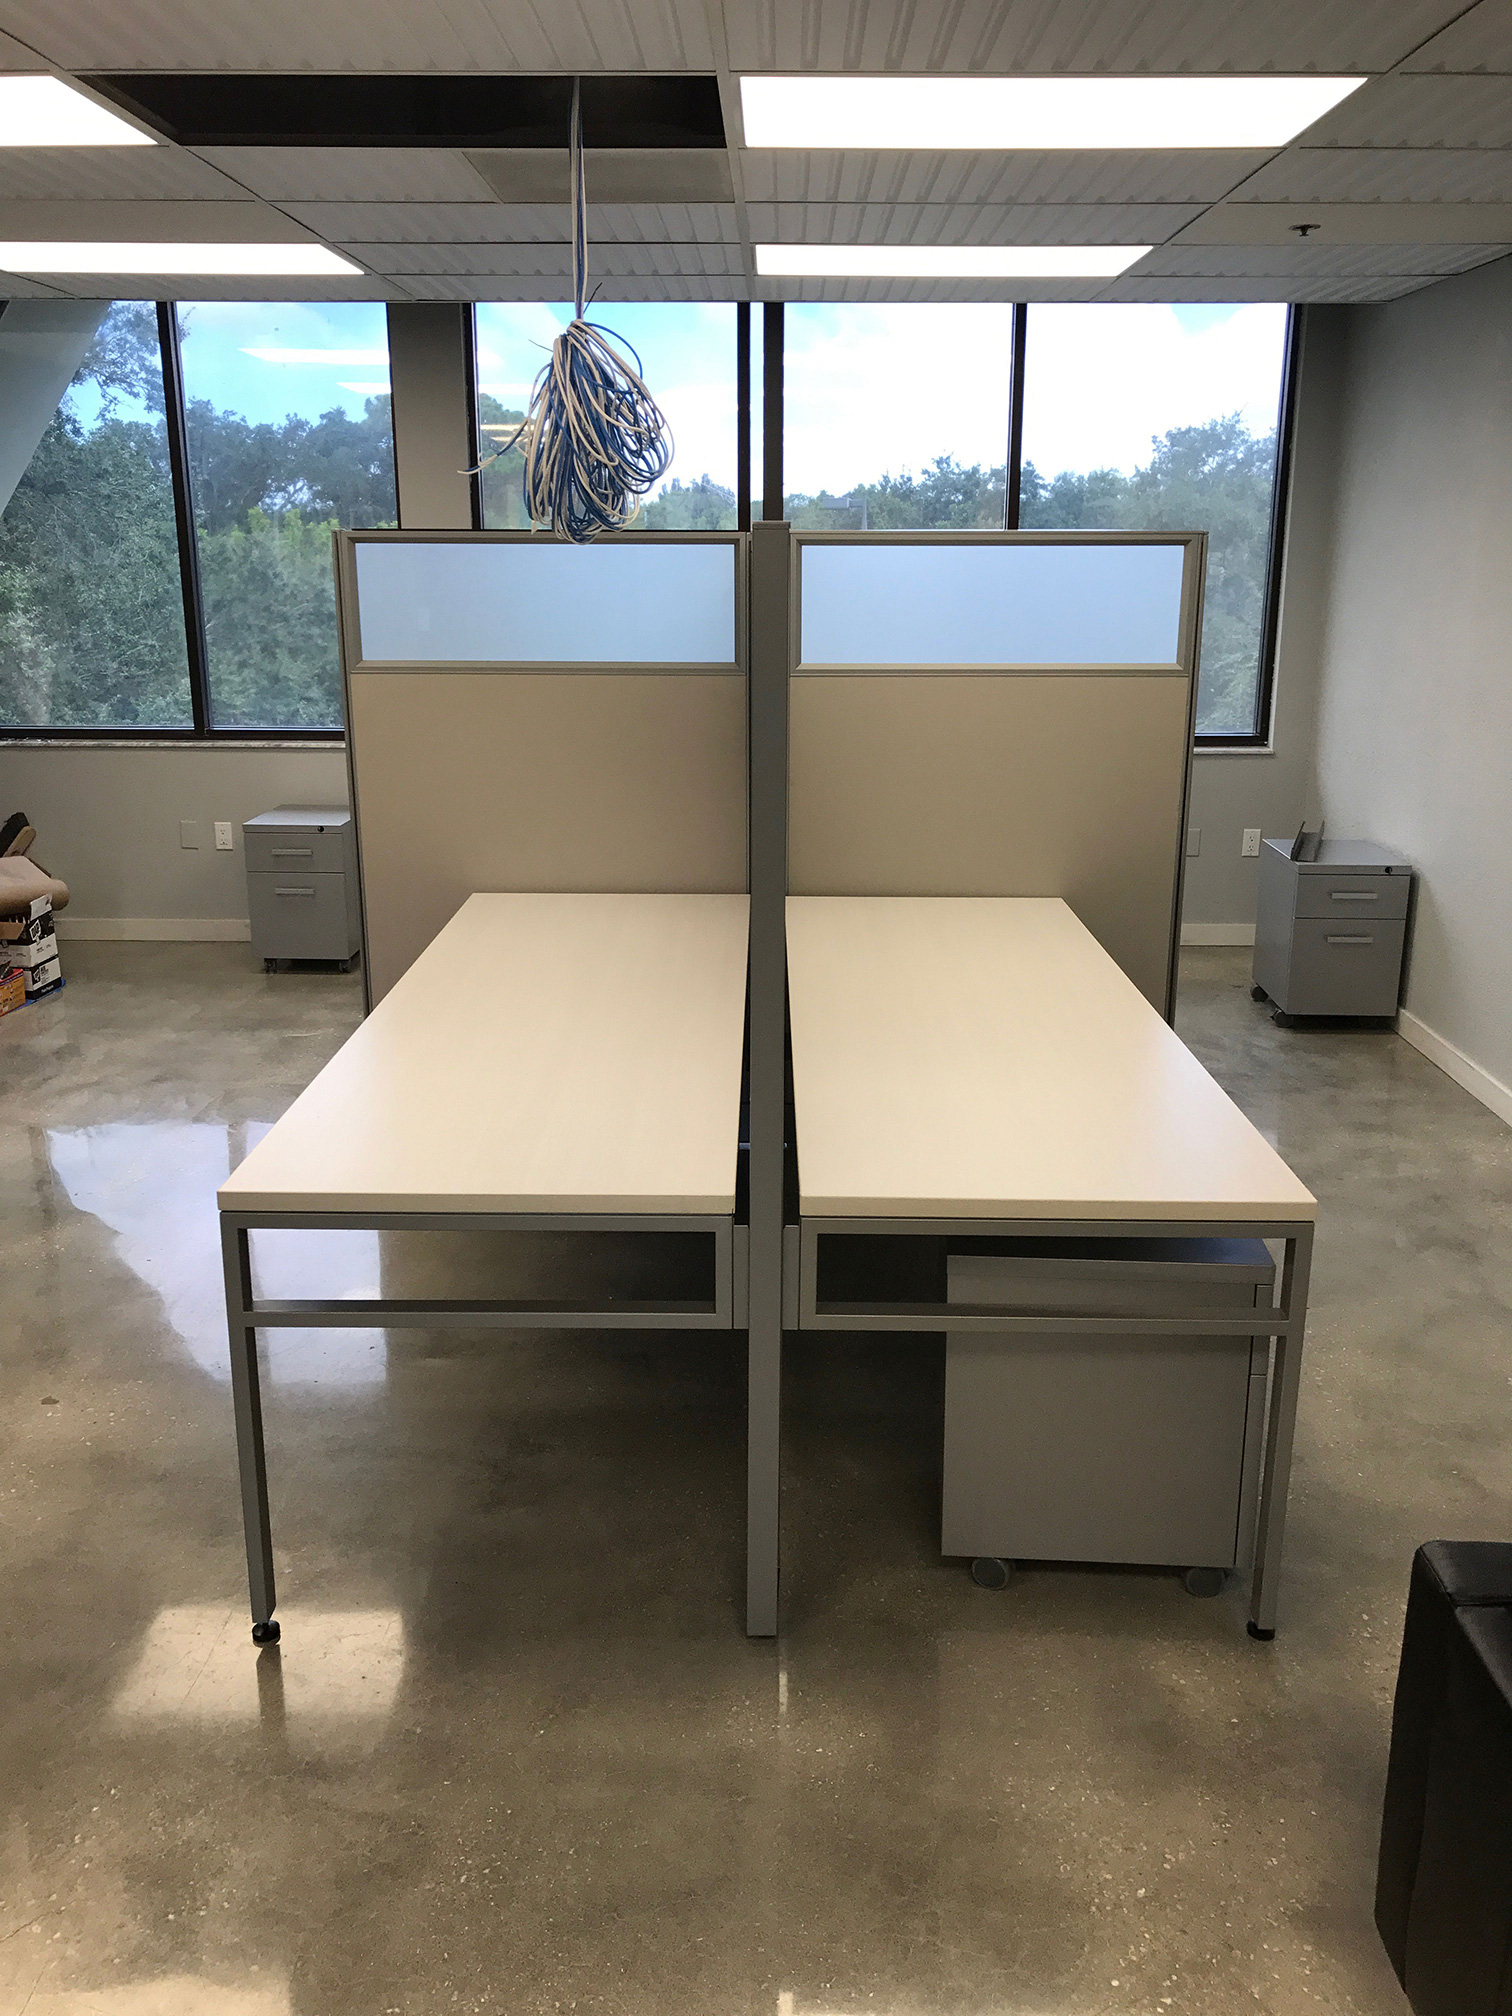 office-cubicles-for-sale-in-chipley-florida-3-2.jpg